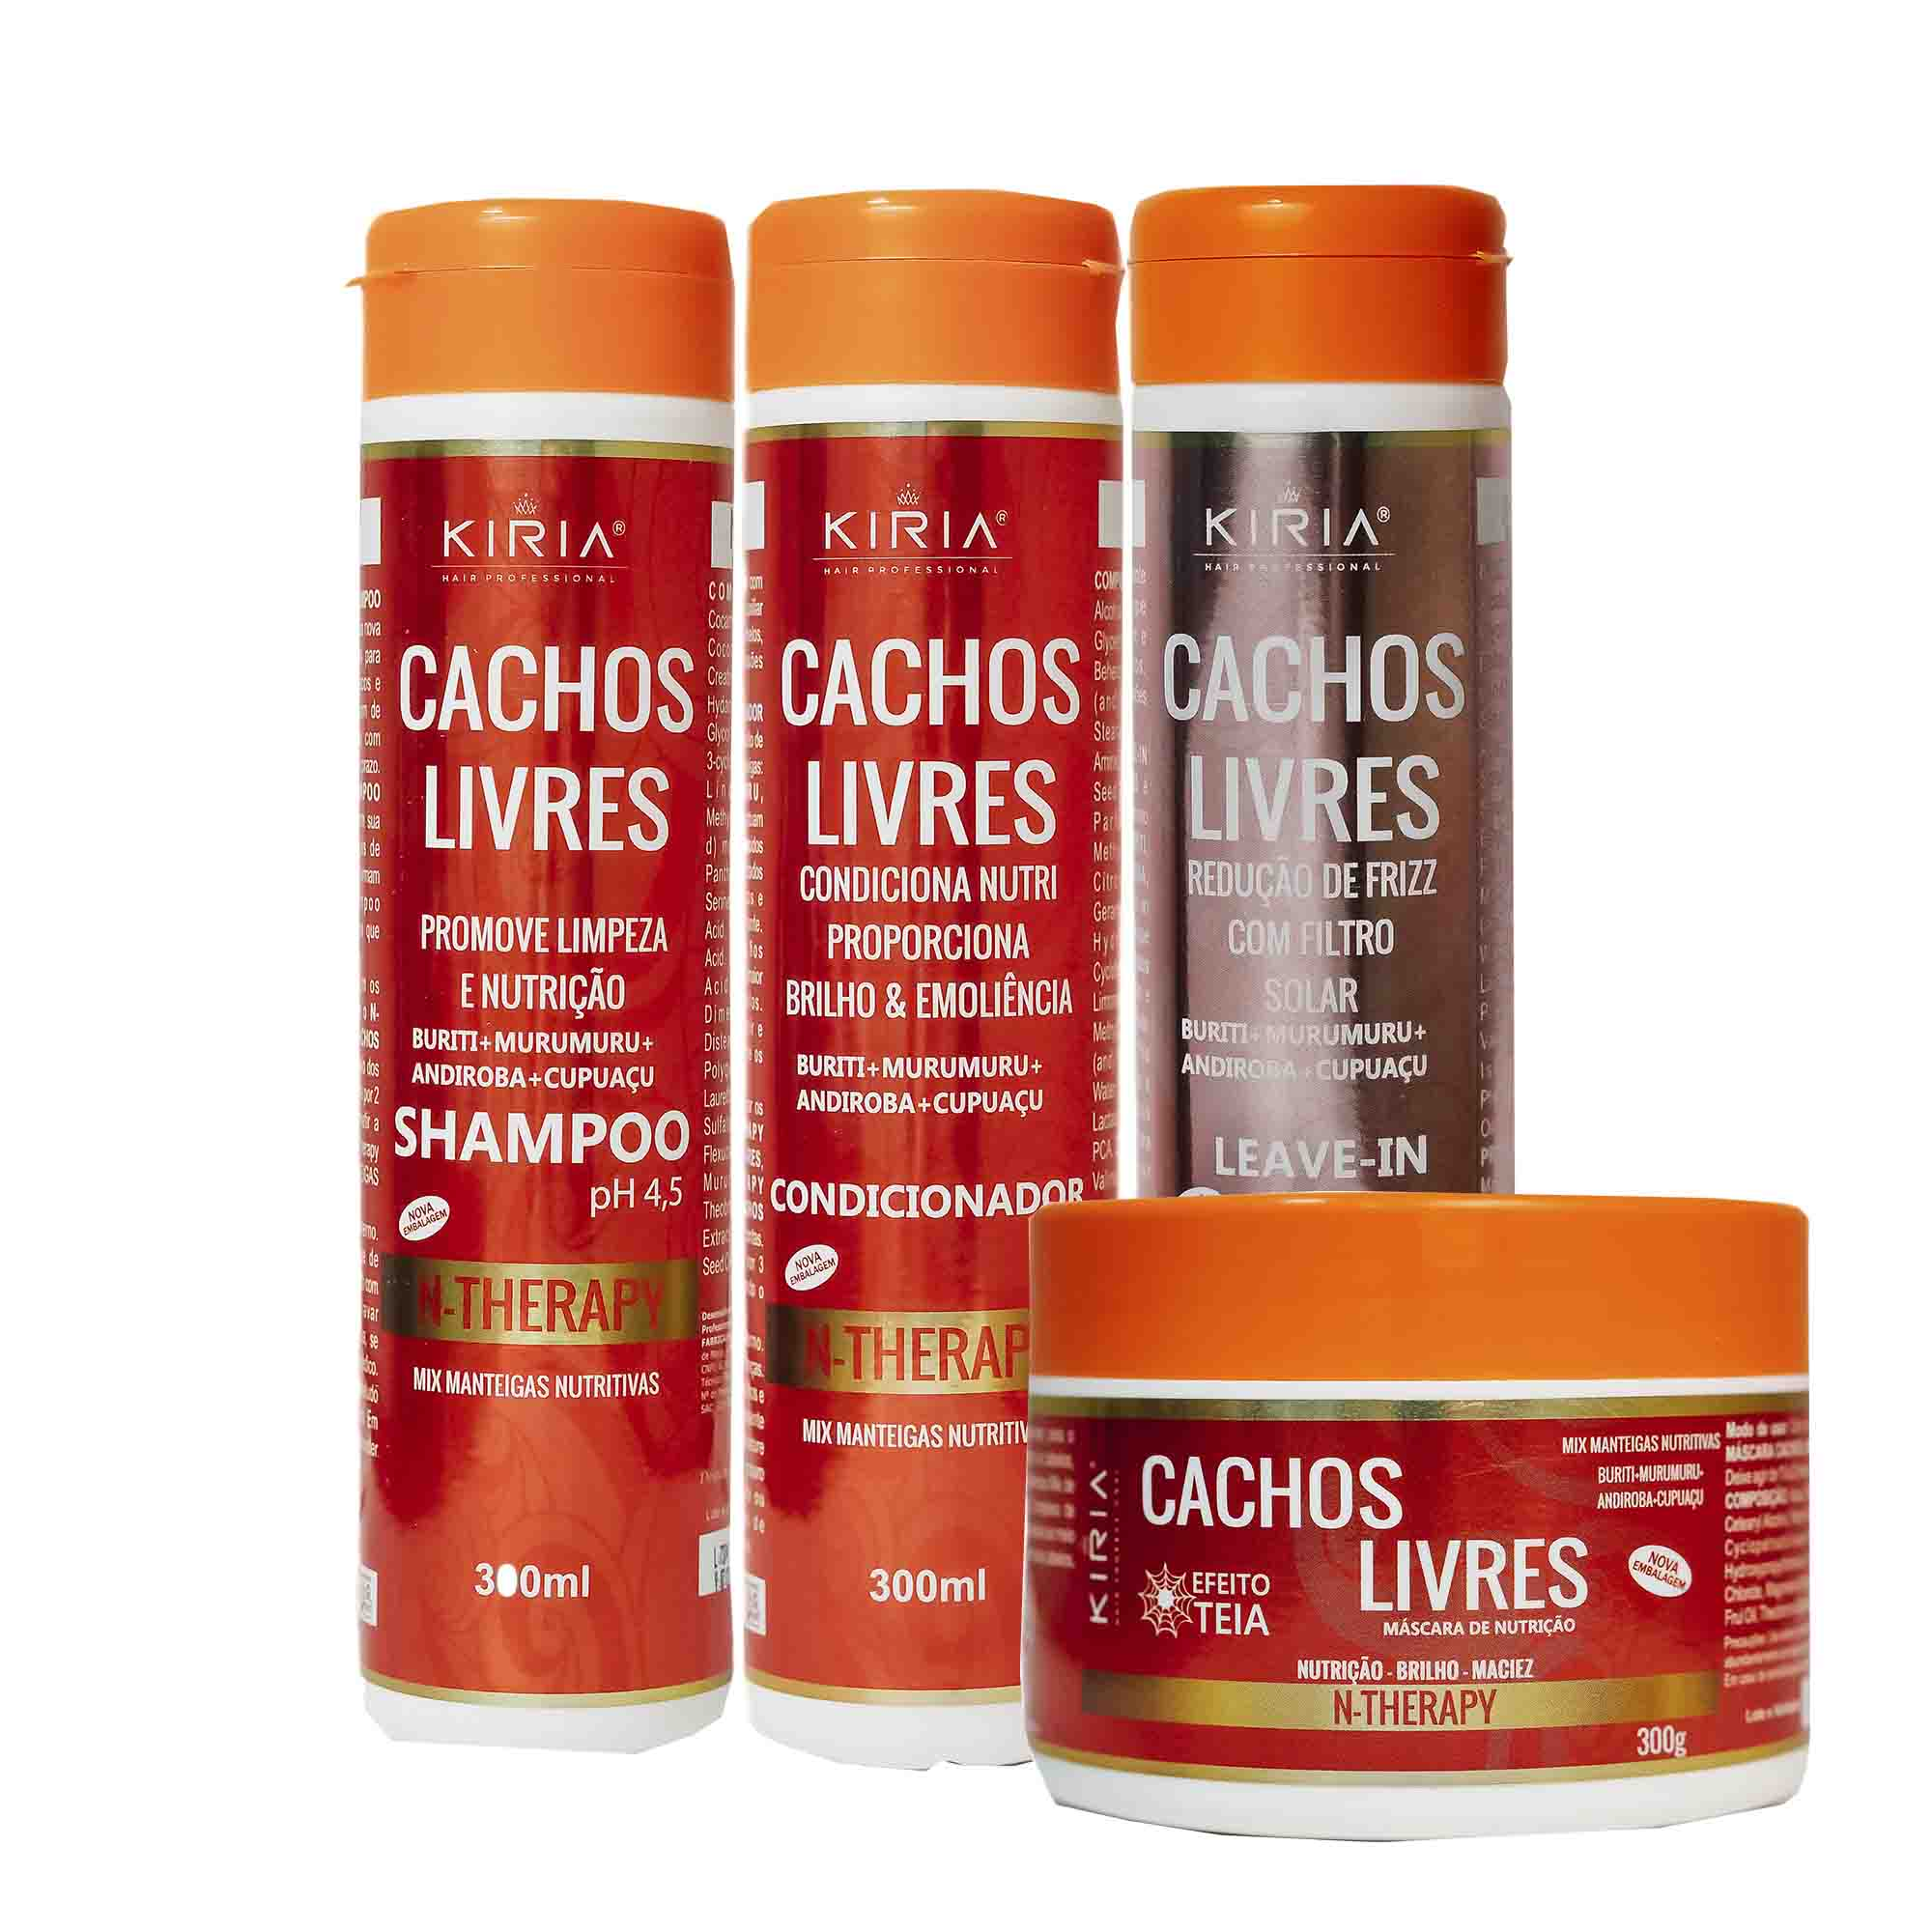 KIT N-THERAPY CACHOS LIVRES